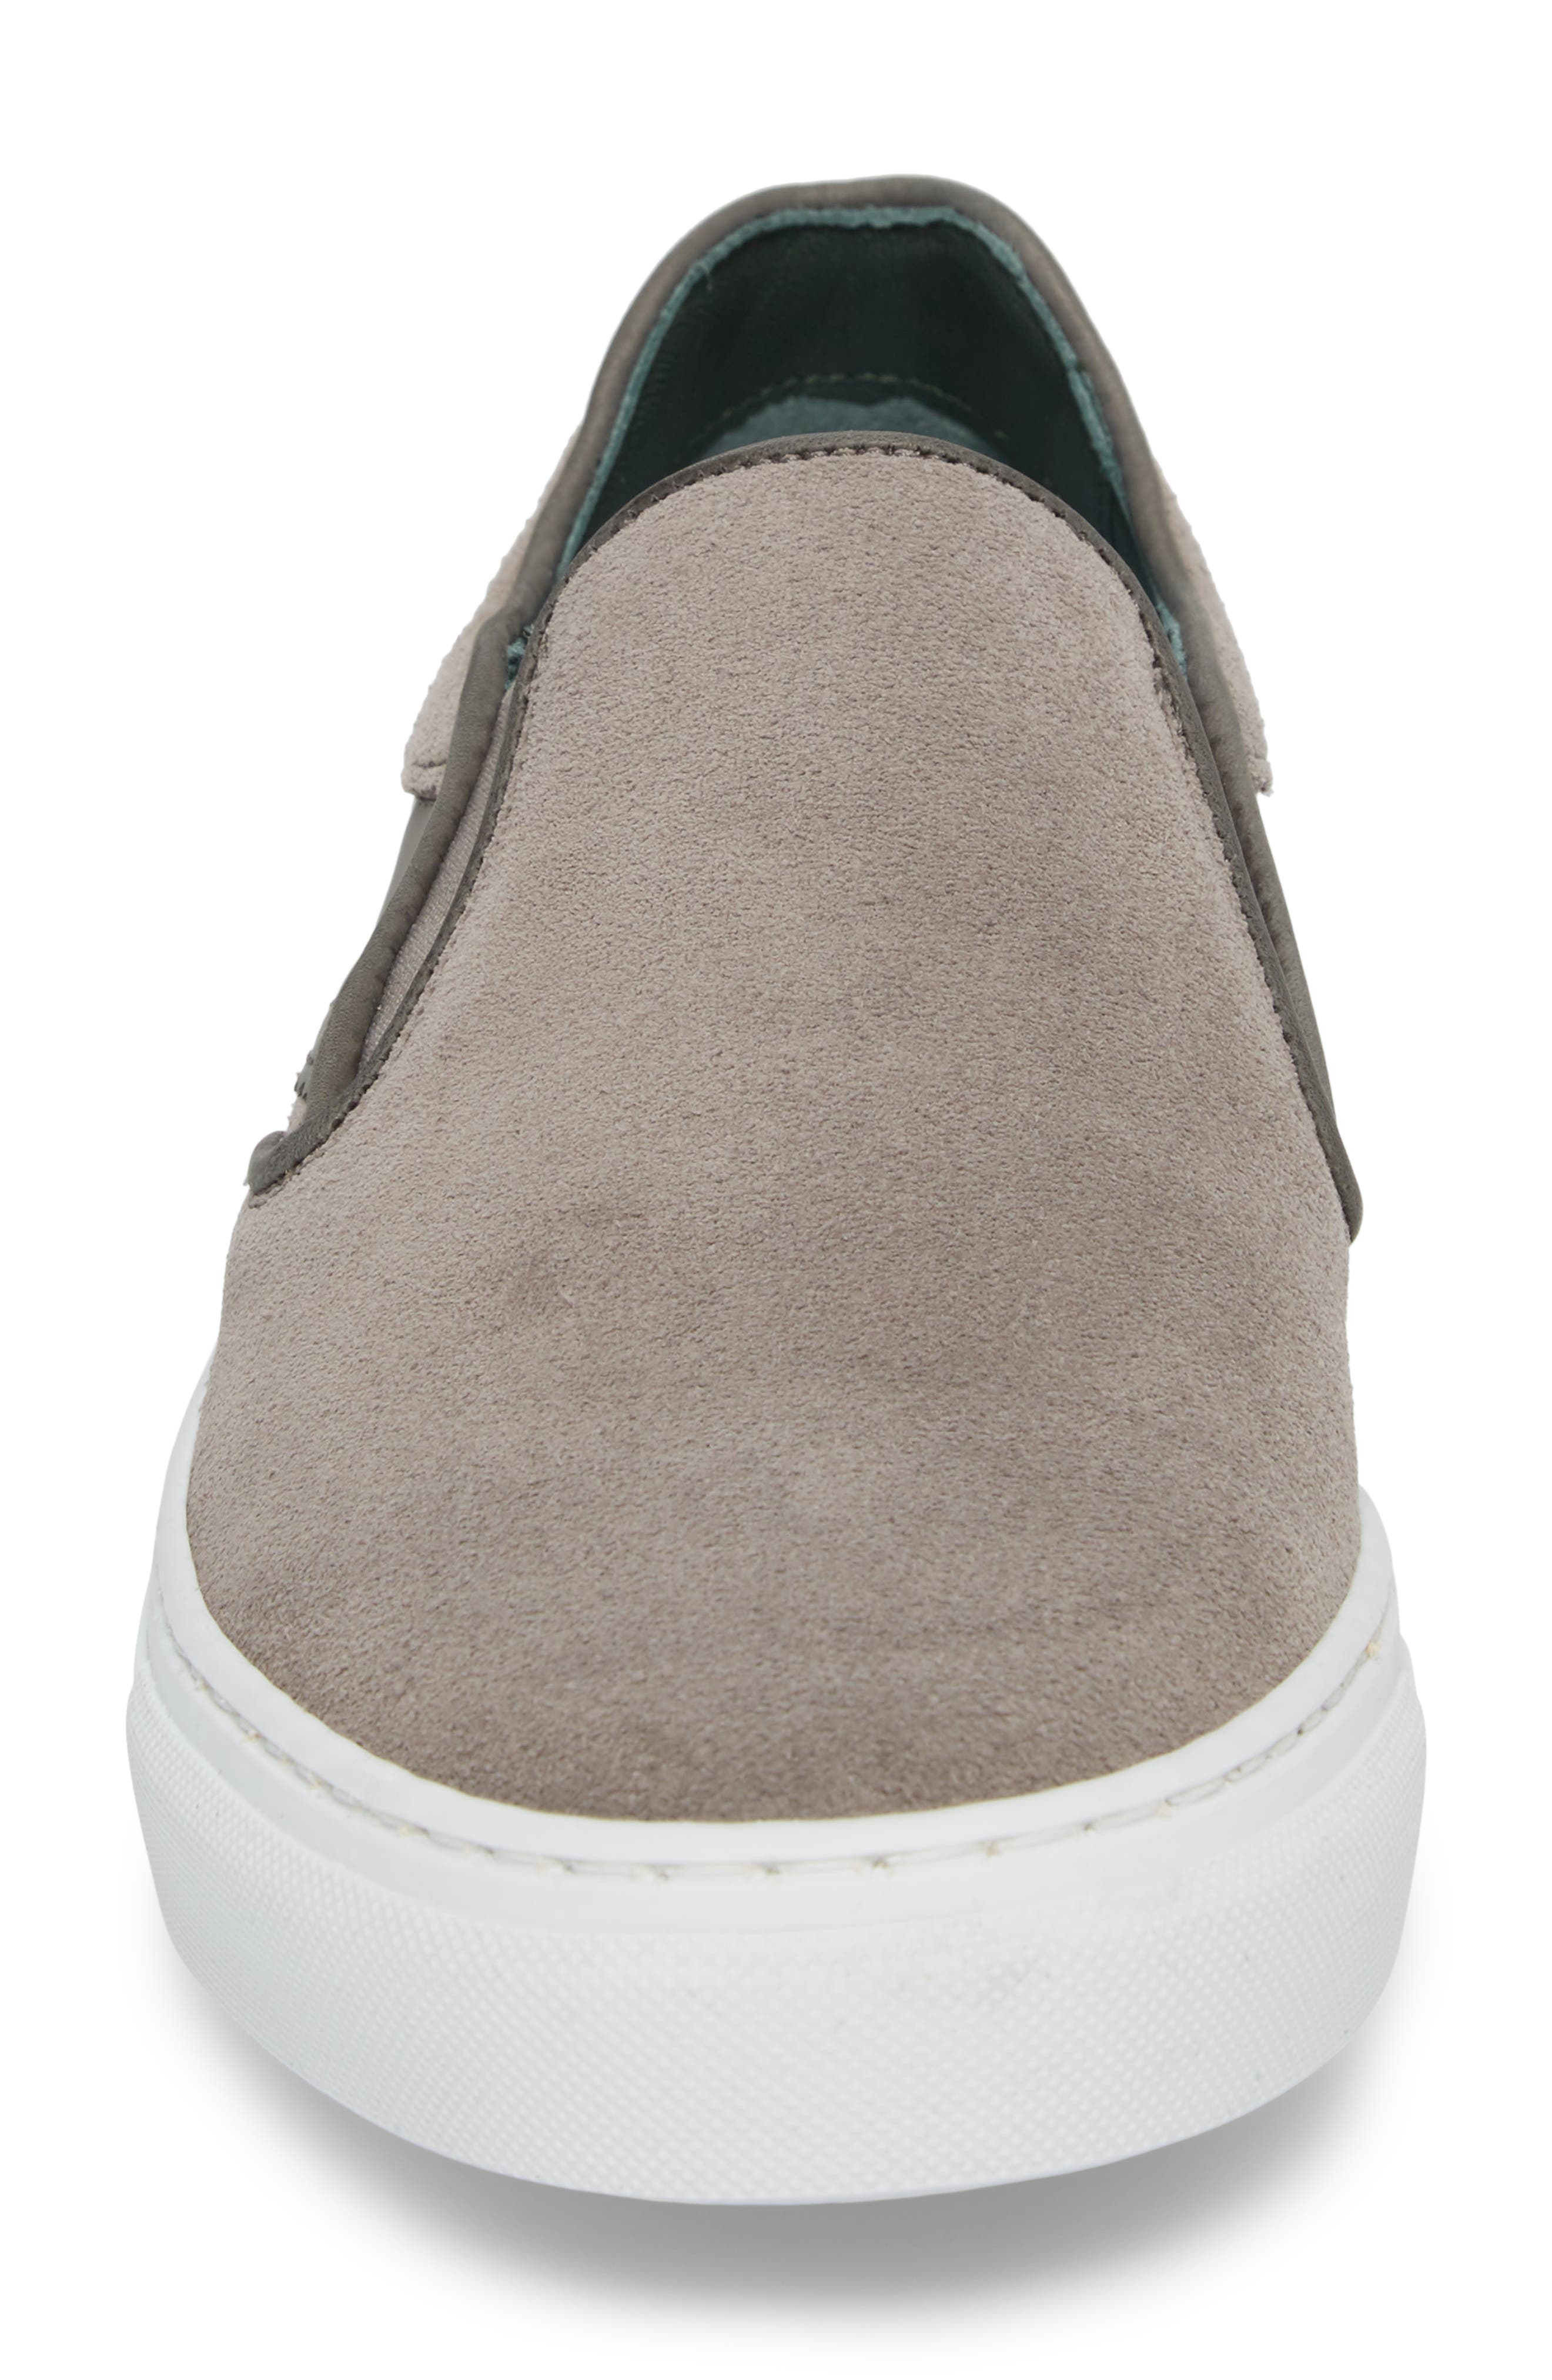 Reaine Brogued Slip-On Sneaker,                             Alternate thumbnail 4, color,                             LIGHT GREY LEATHER